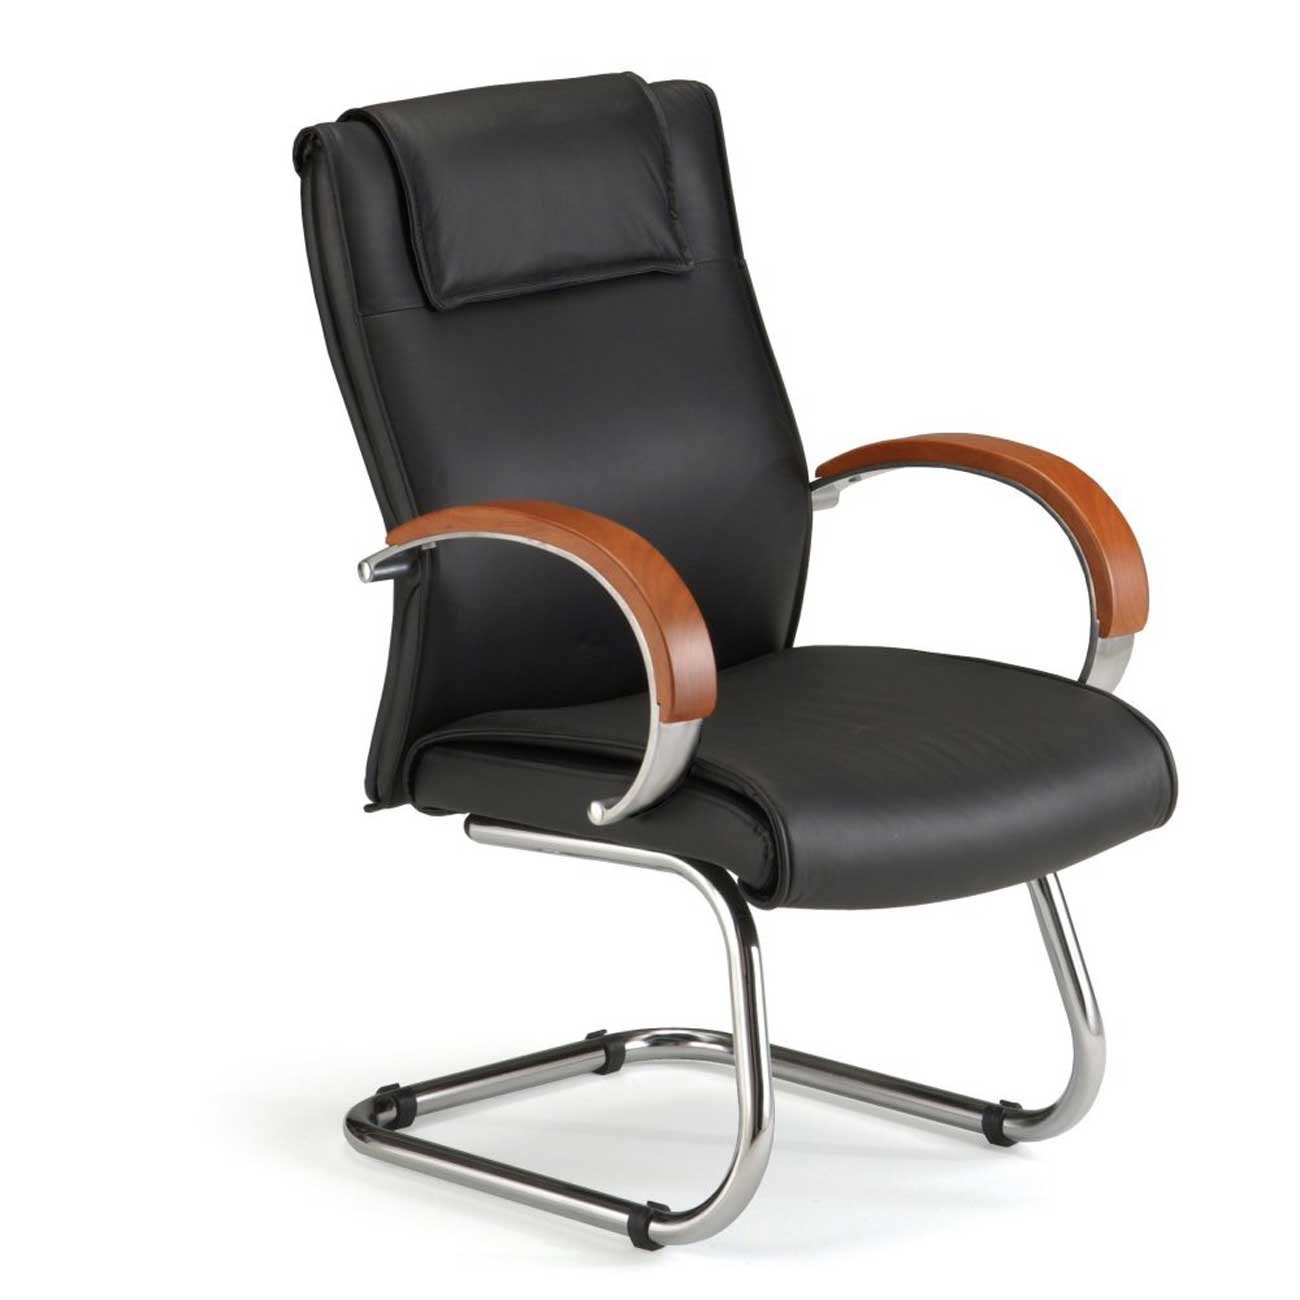 Wooden Arms Executive Leather Office Chair